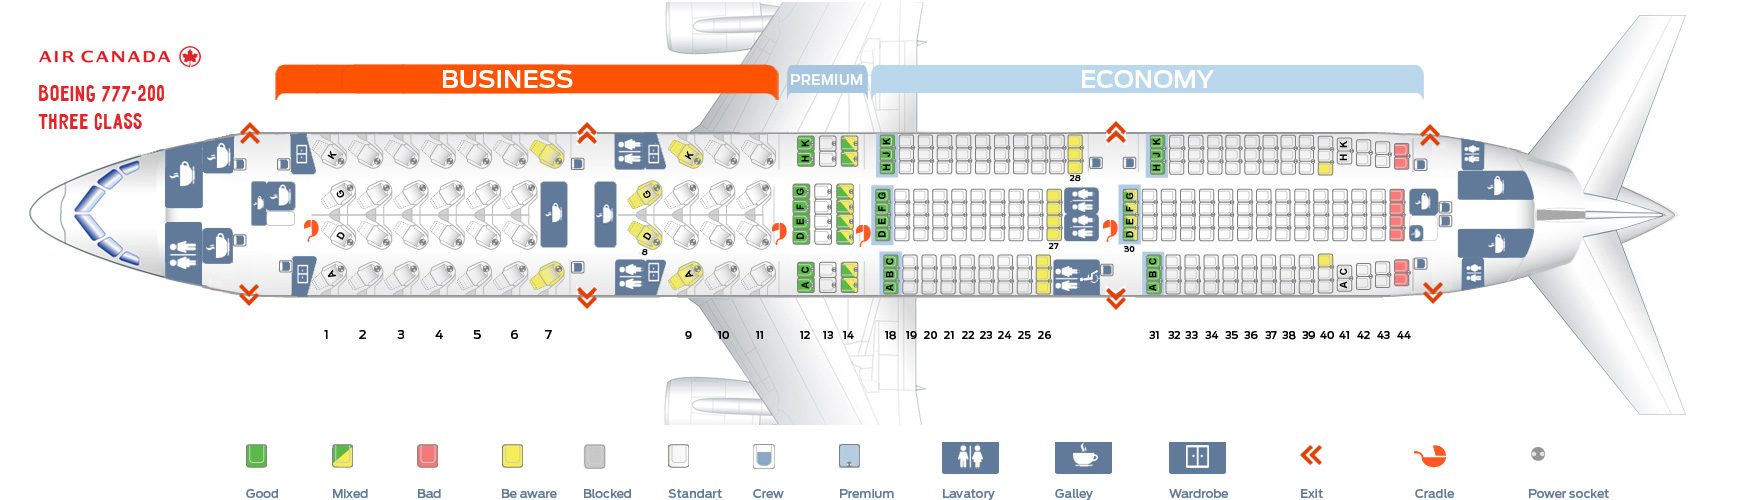 boeing 777 200 seat map with Seat Map Boeing 777 200 Air Canada Best Seats In Plane on Watch together with Boeing 777 200 Singapore Airlines Photos And Description Of The Plane likewise Watch also Fleet Information also Klm royal dutch airlines seating maps.